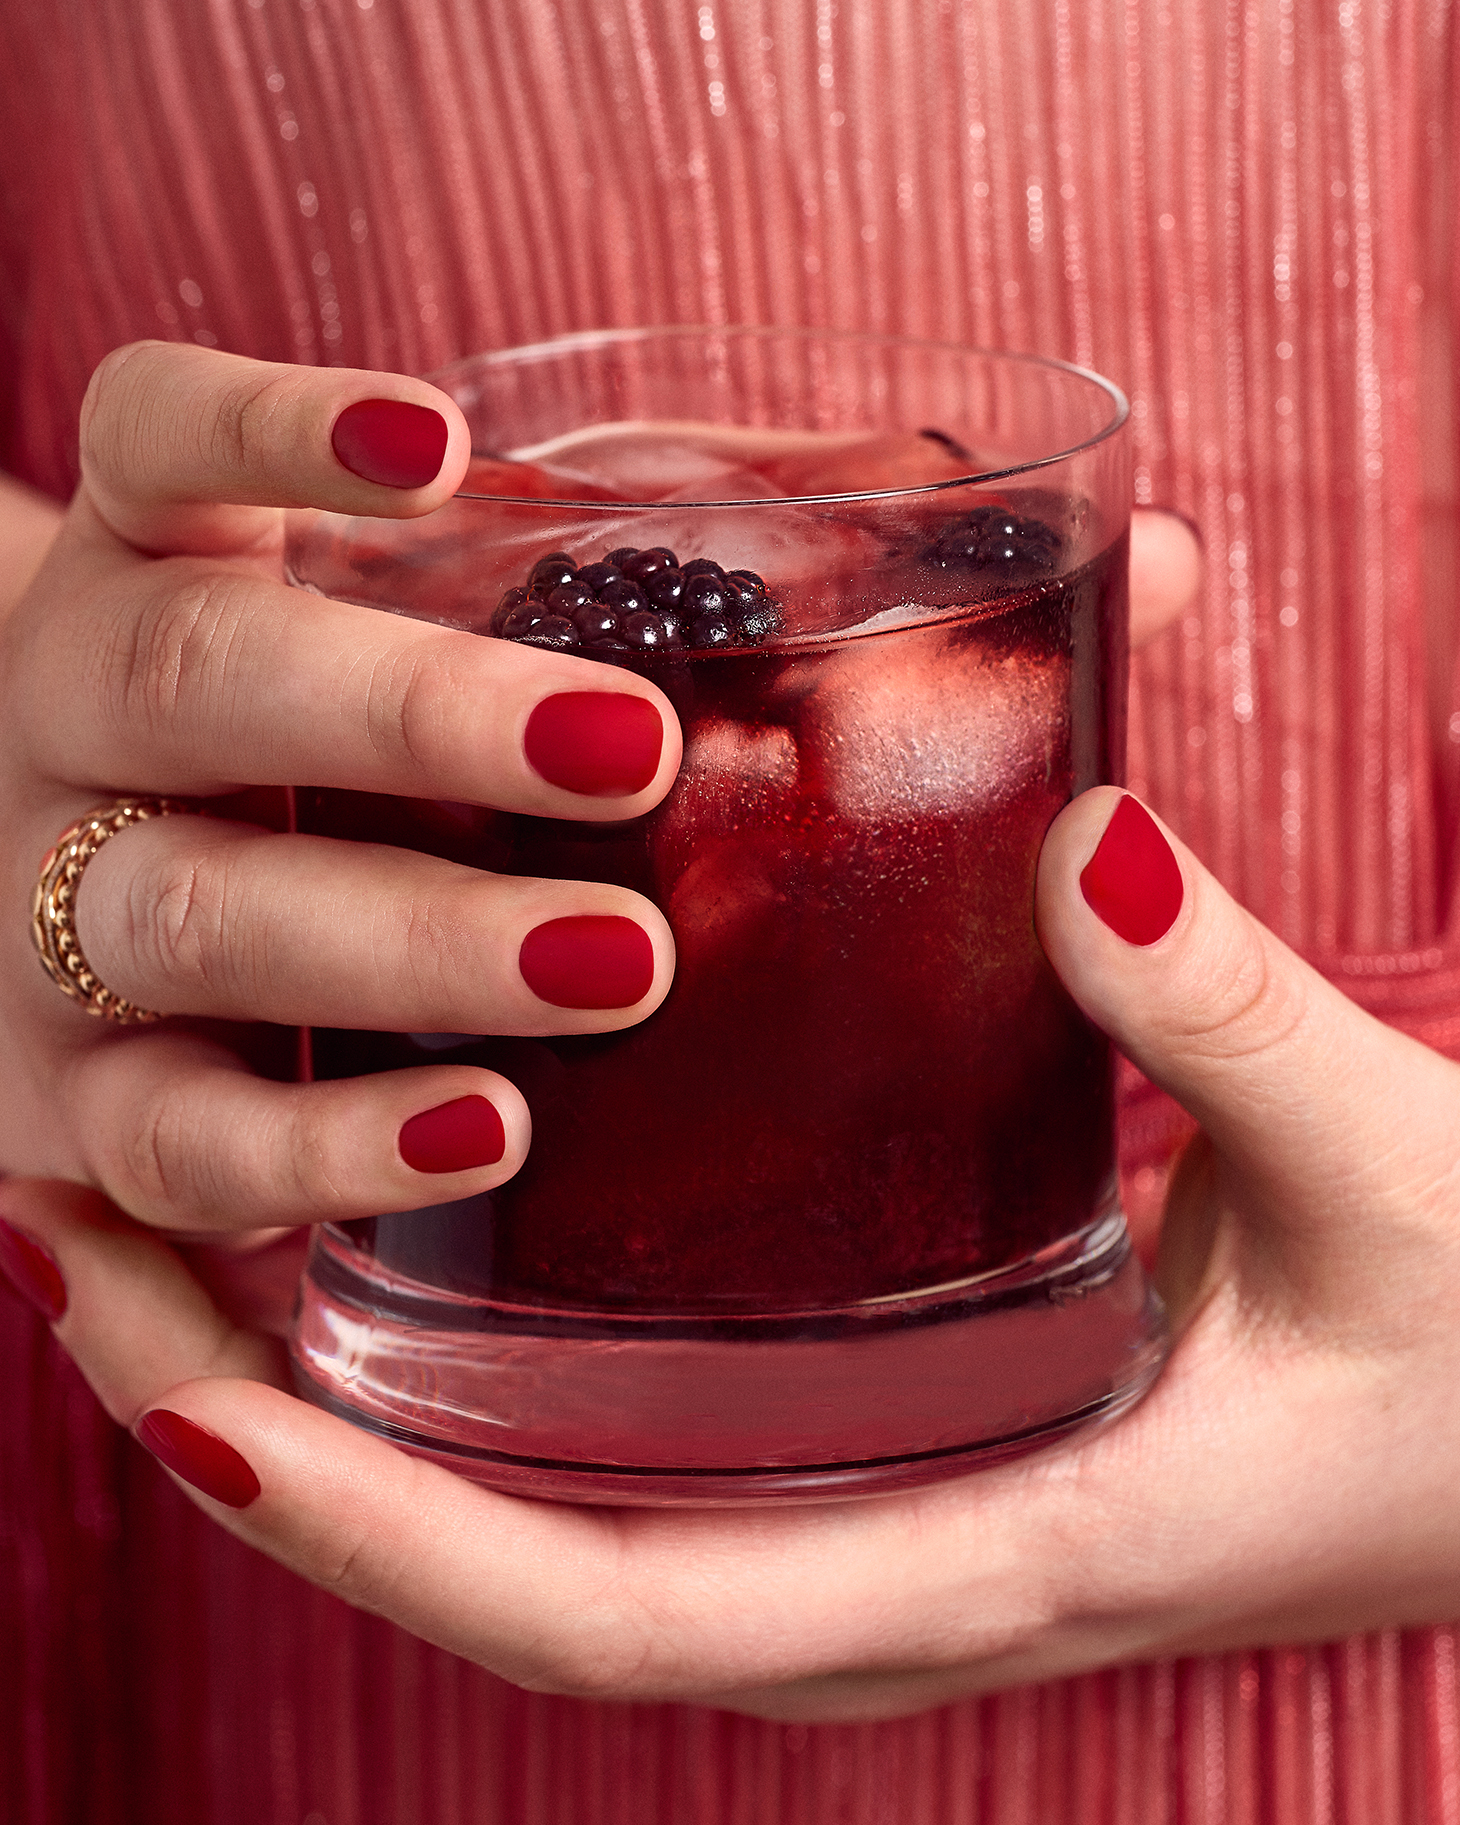 Makeup Drink Curvy Plus Size Red Lips Manicure